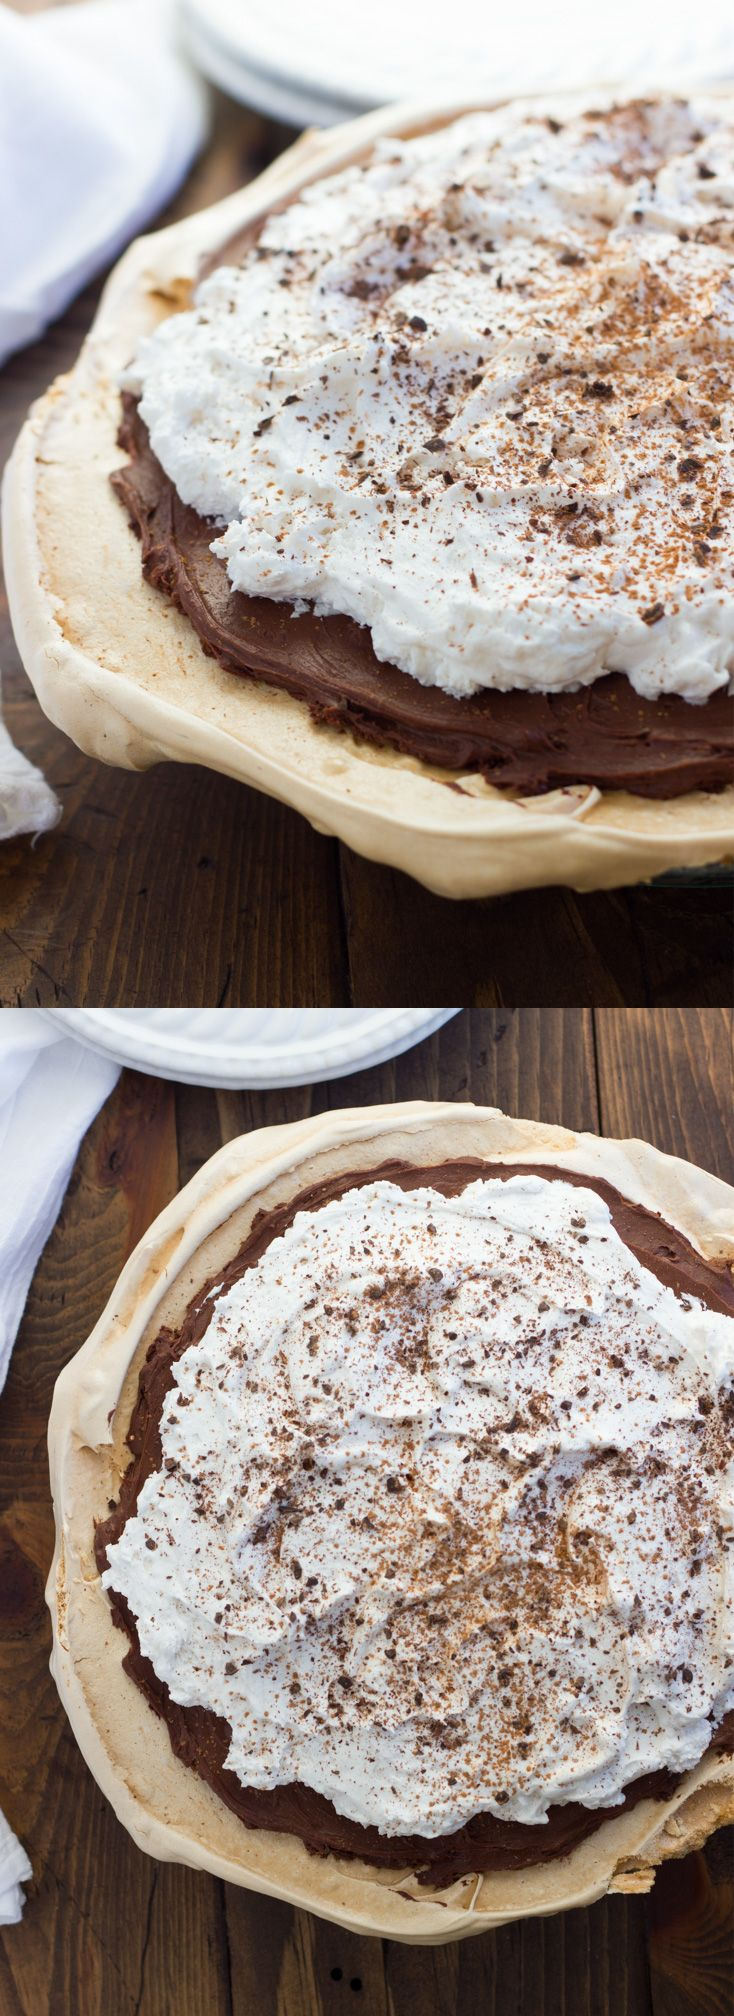 Chocolate Angel Pie! A crisp meringue crust filled with chocolate-truffle-like filling, then topped with pillowy whipped cream. Gluten-free, dairy-free and made with pantry ingredients.